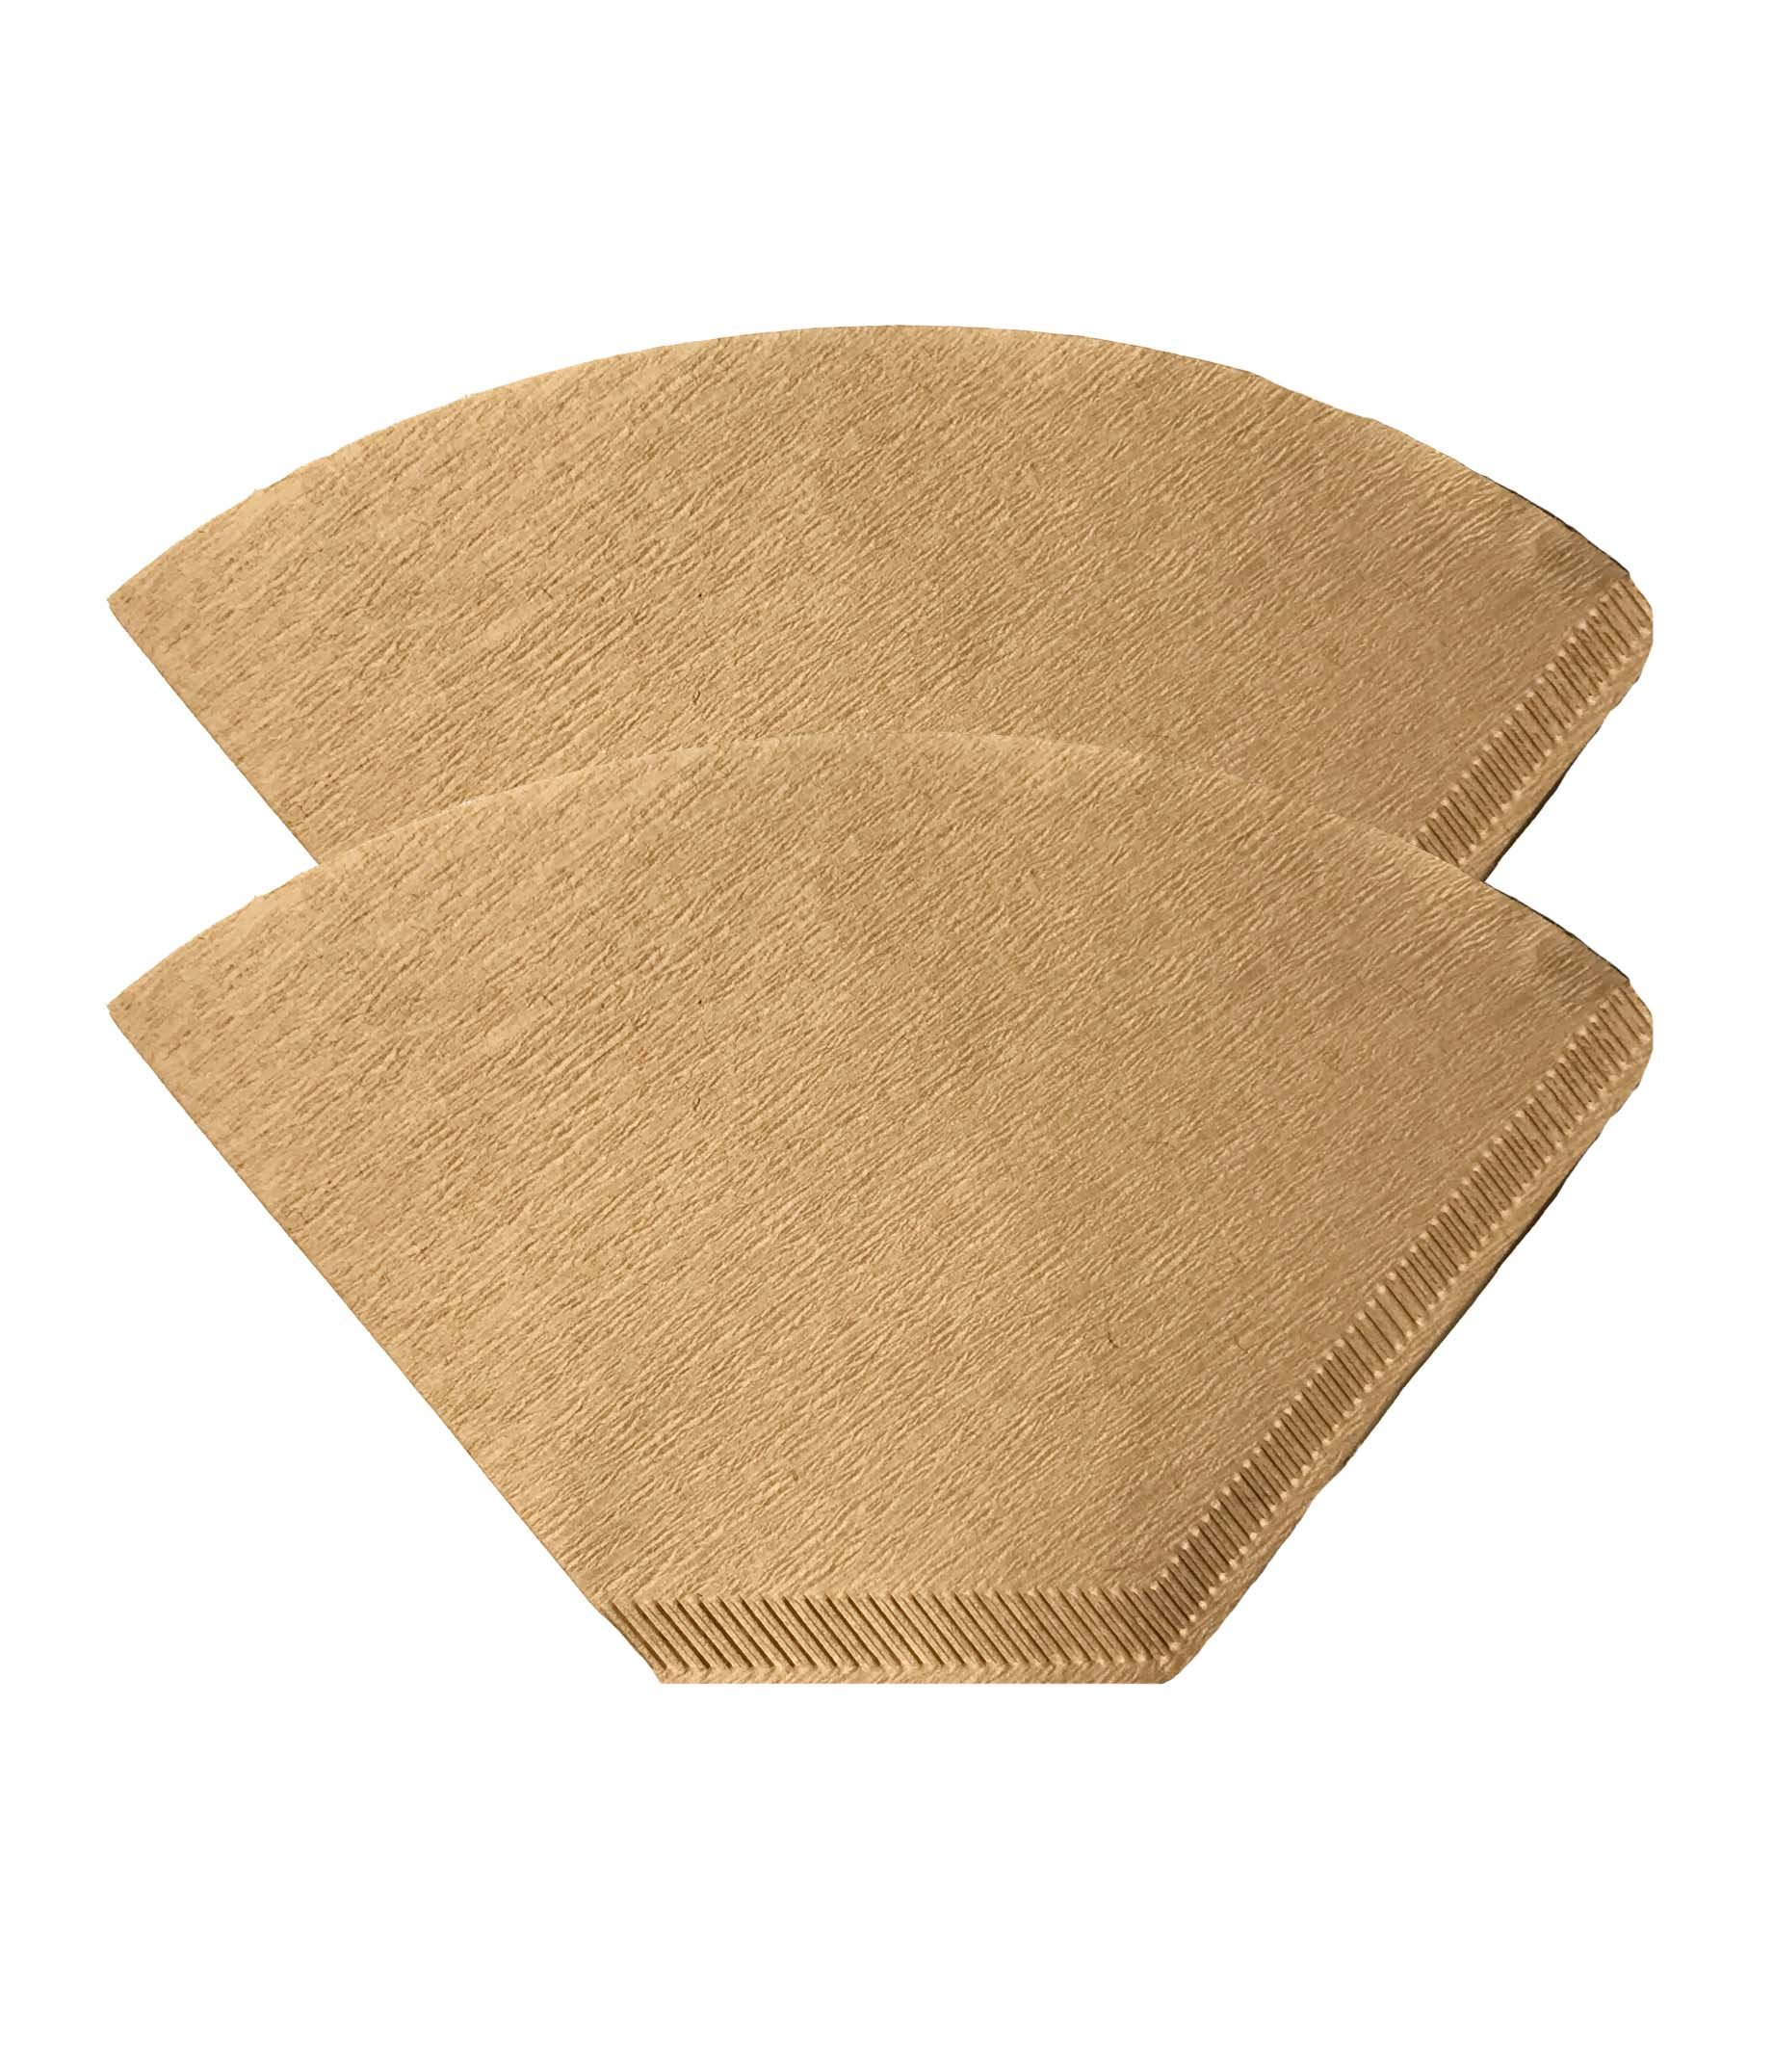 Think Crucial 200 Replacements for Unbleached Natural Brown Paper #4 Coffee Disposable Cone Filters, Fits All Coffee Makers With #4 Filters including Melitta, Great for Homemade Coffee